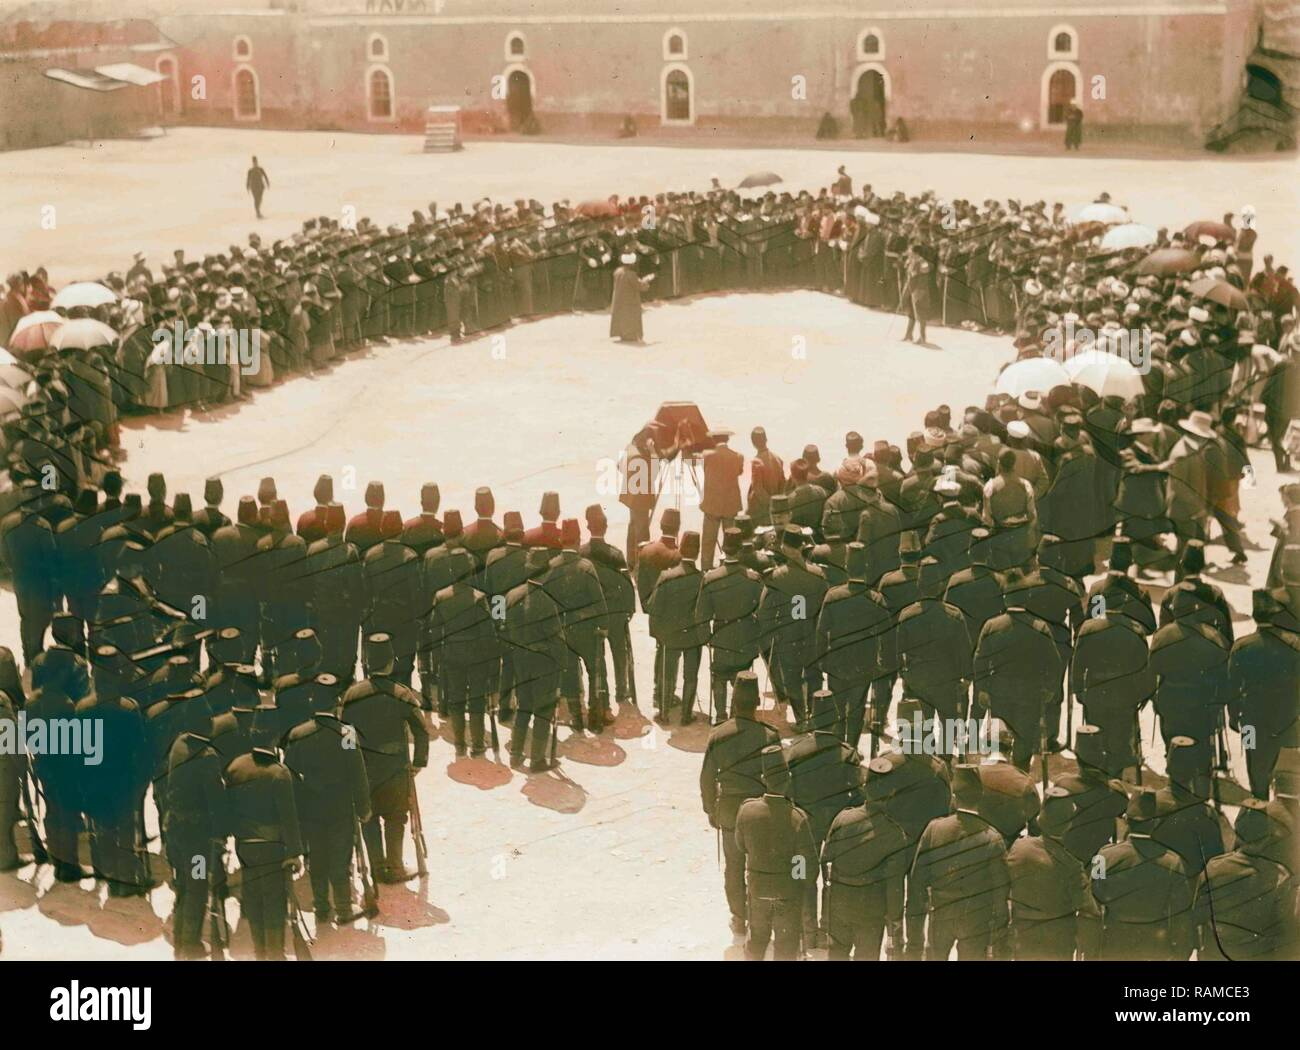 Turkish military WWI. Man being photographed in a circle of people with Turkish army. 1914. Reimagined - Stock Image